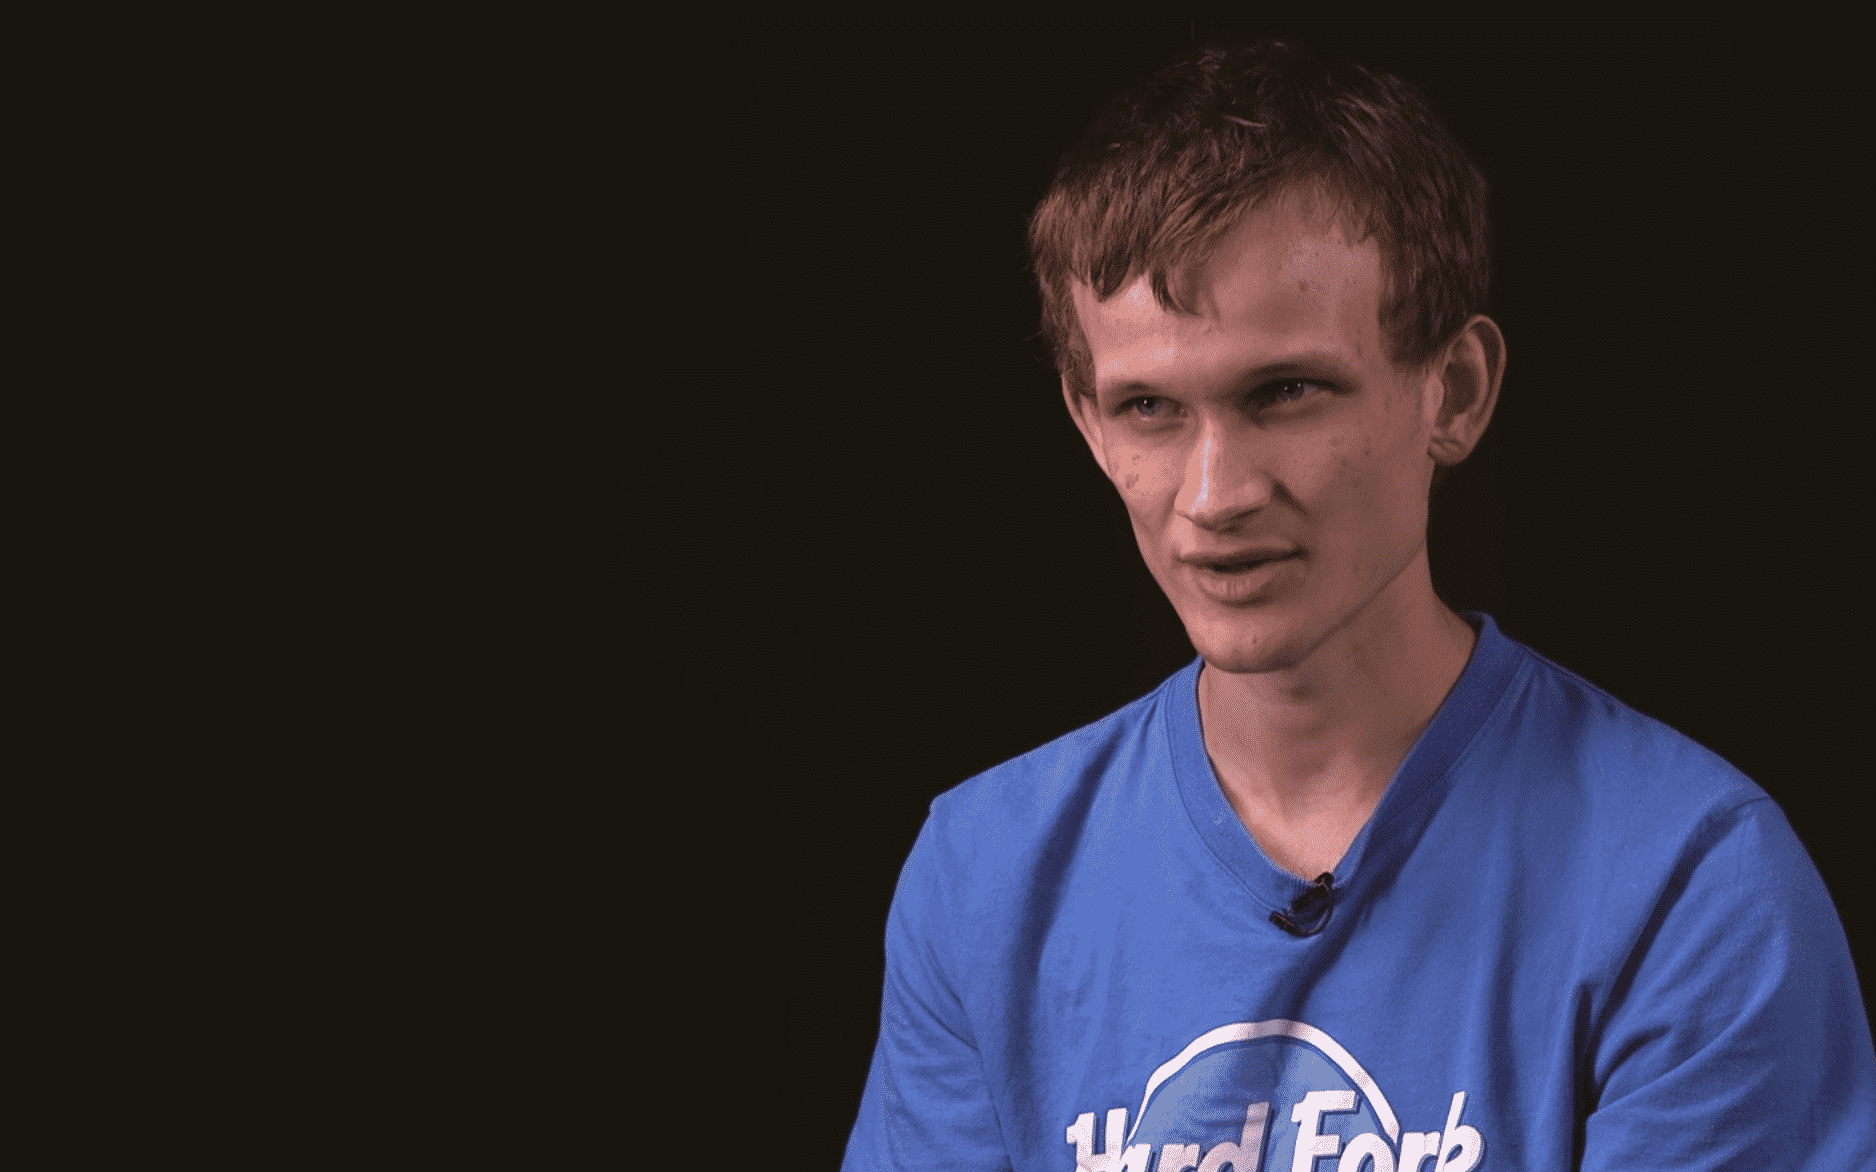 Ethereum Creator, Vitalik Buterin, says Network Will Scale to 100k TPS Before 2.0